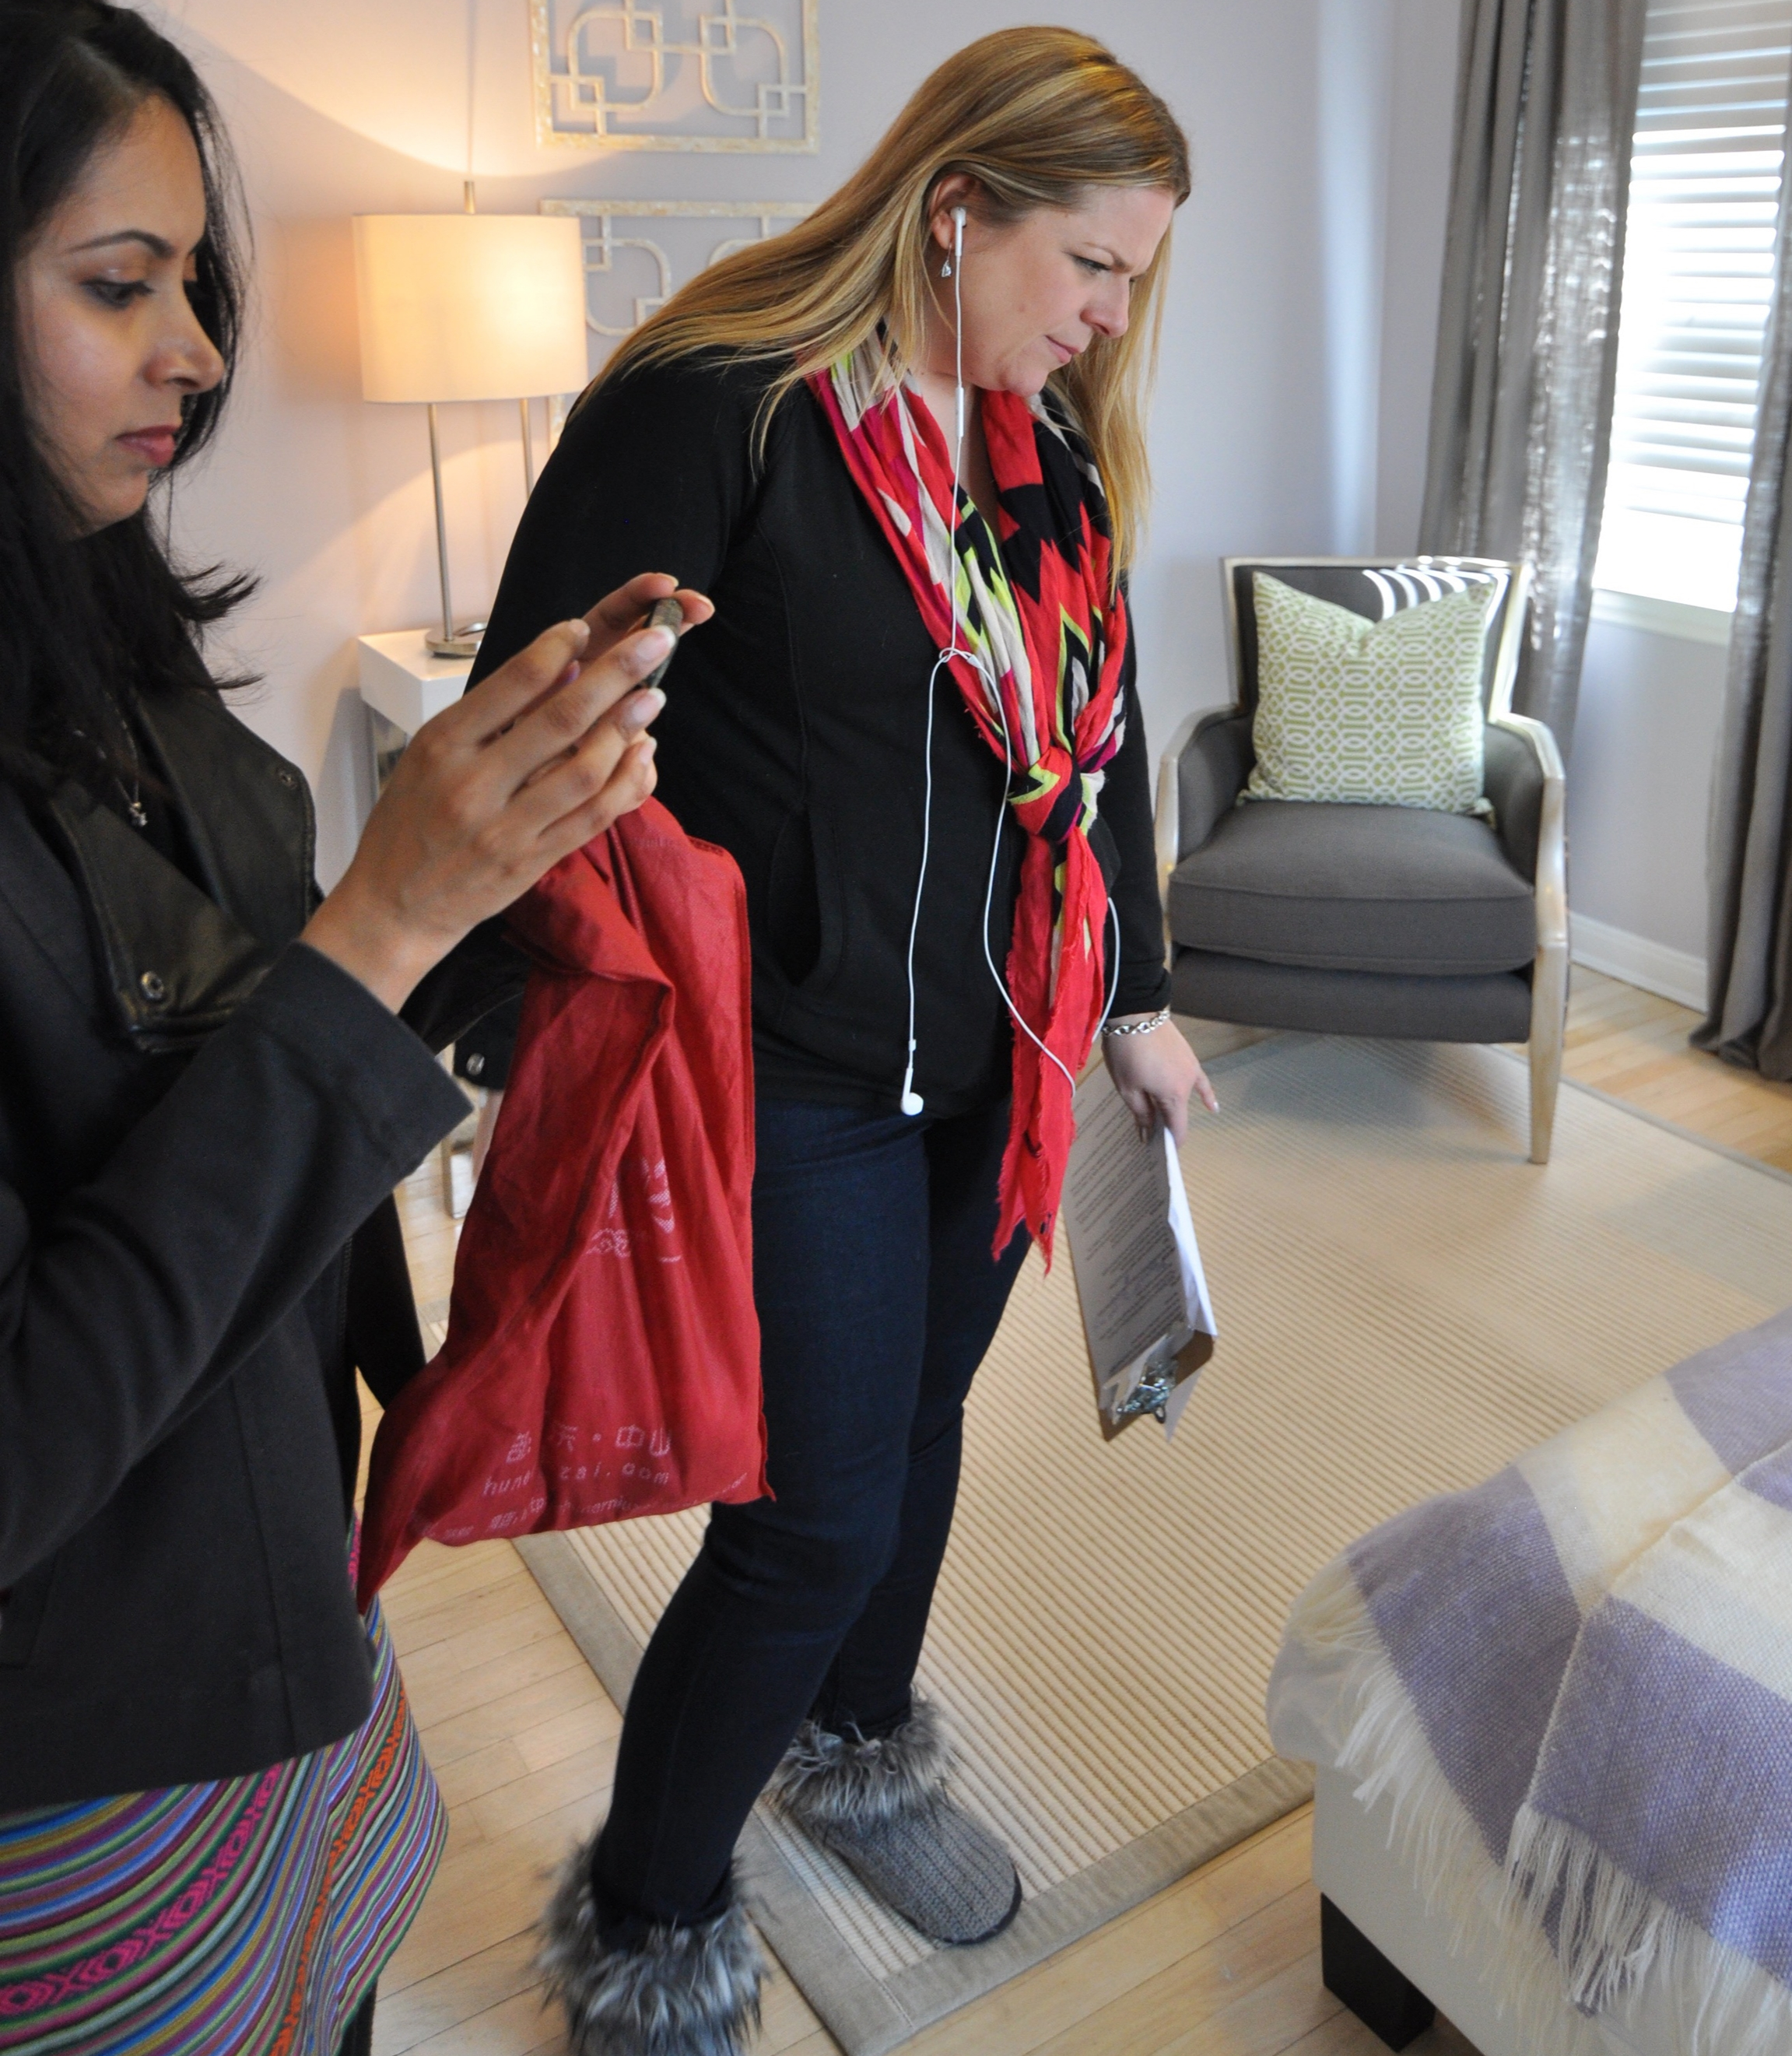 HGTV_Buying and Selling with The Property Brothers_Season 3_Episode 316_Behind the Scenes on Reveal Day_Deepti_Misty.jpg